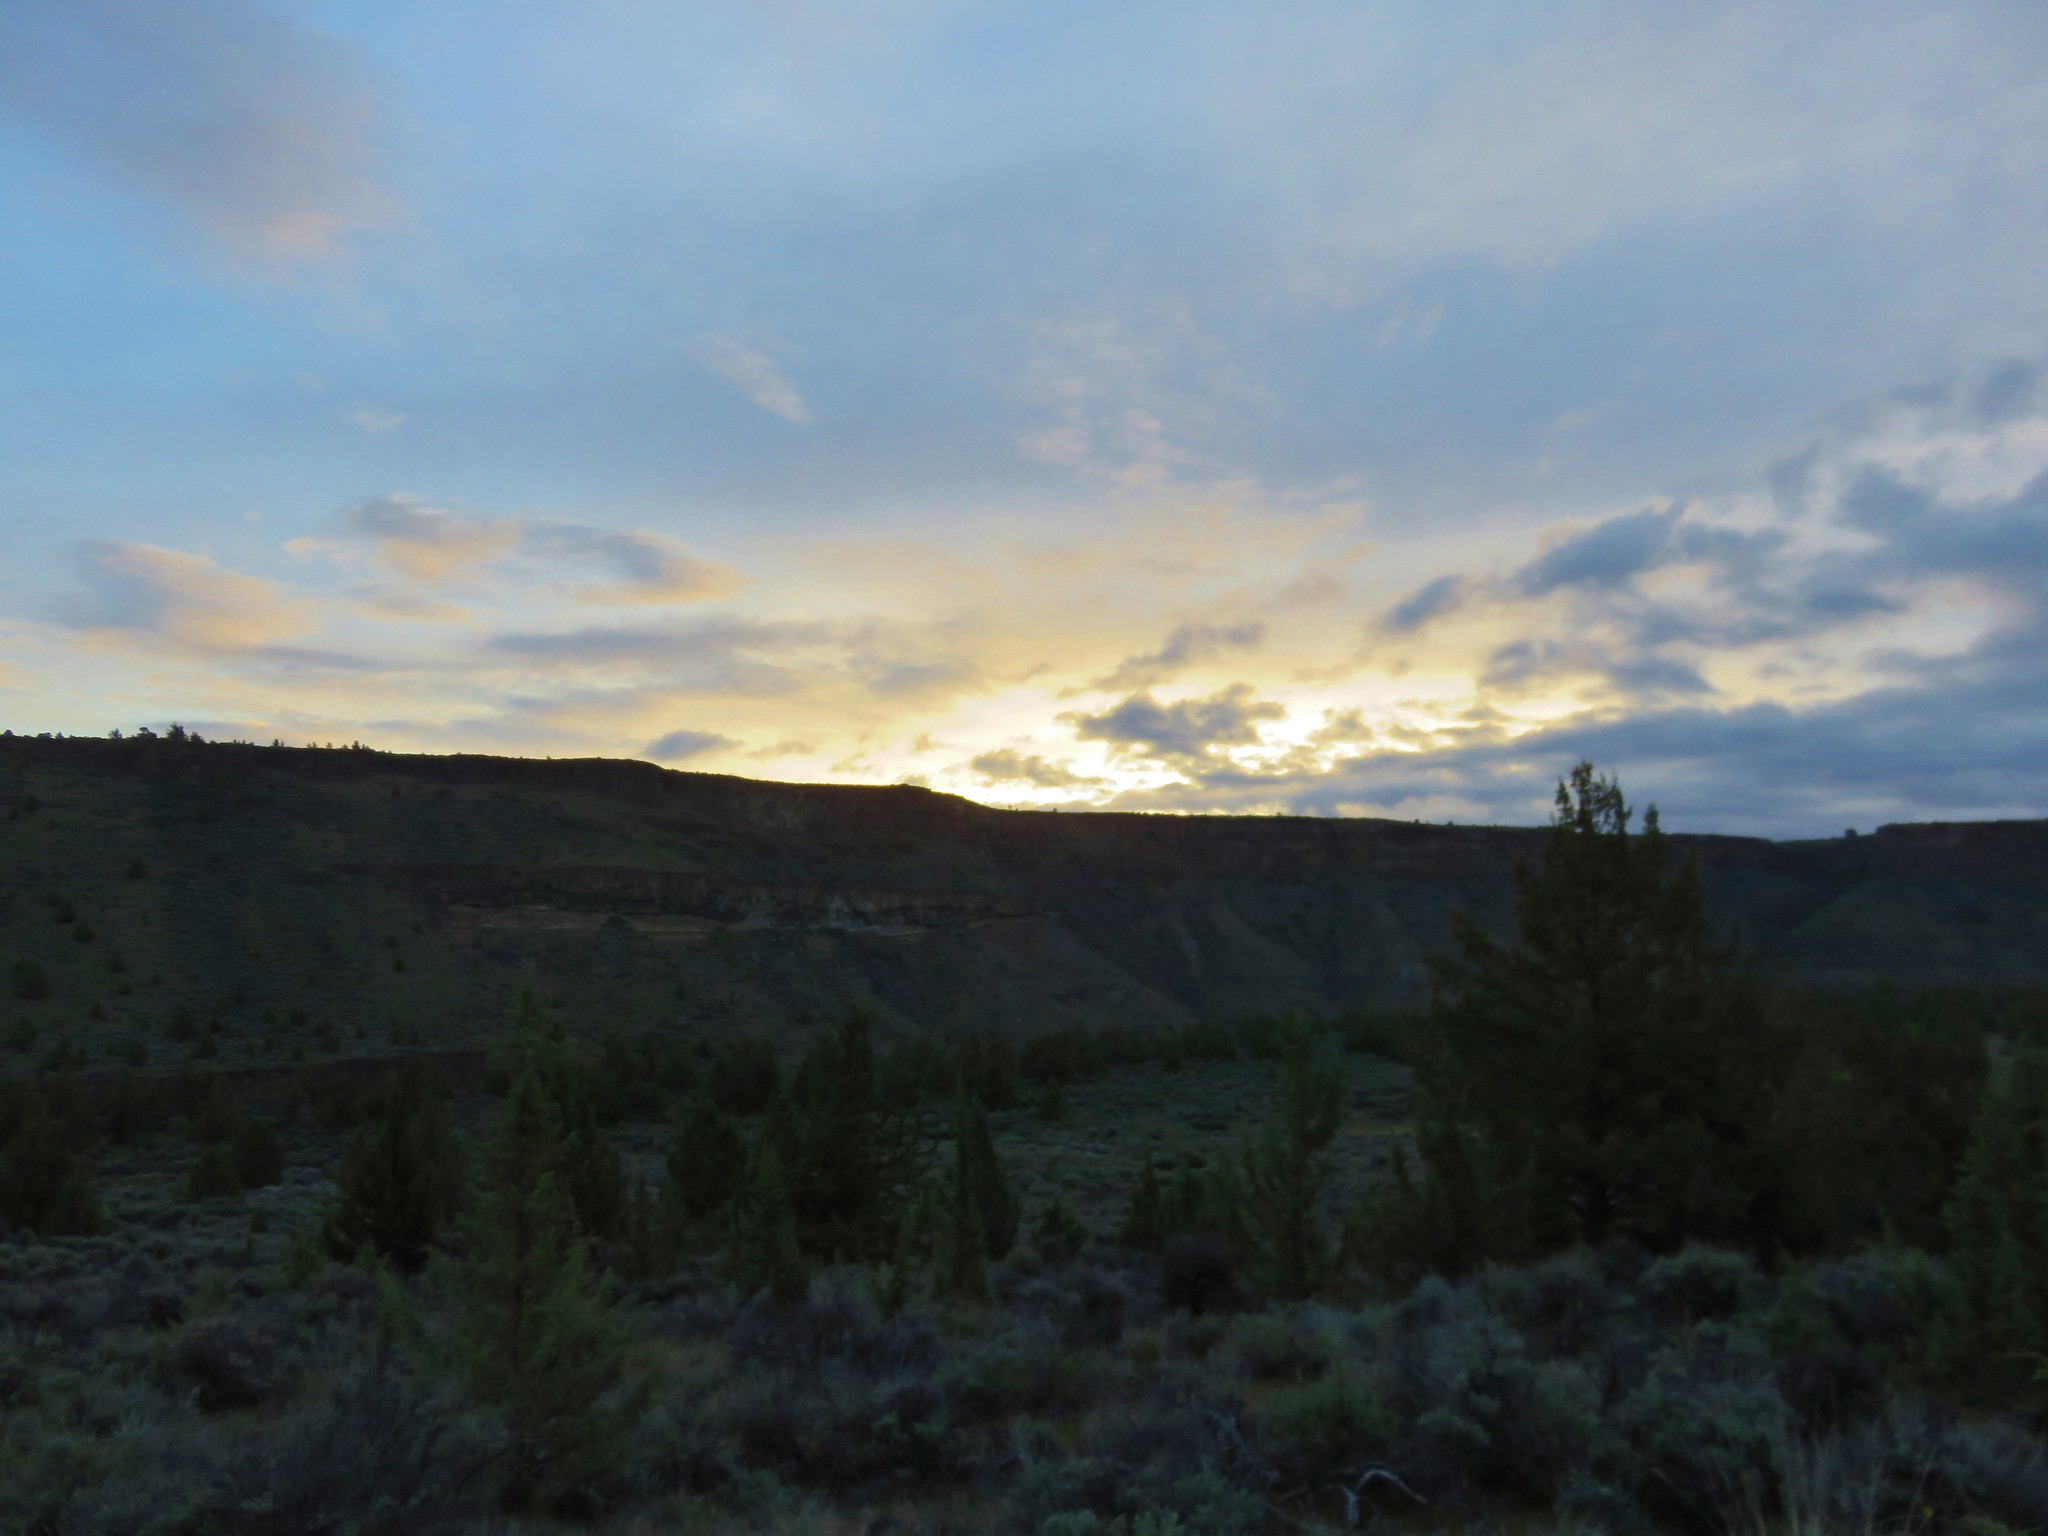 Sunrise over the Crooked River Gorge